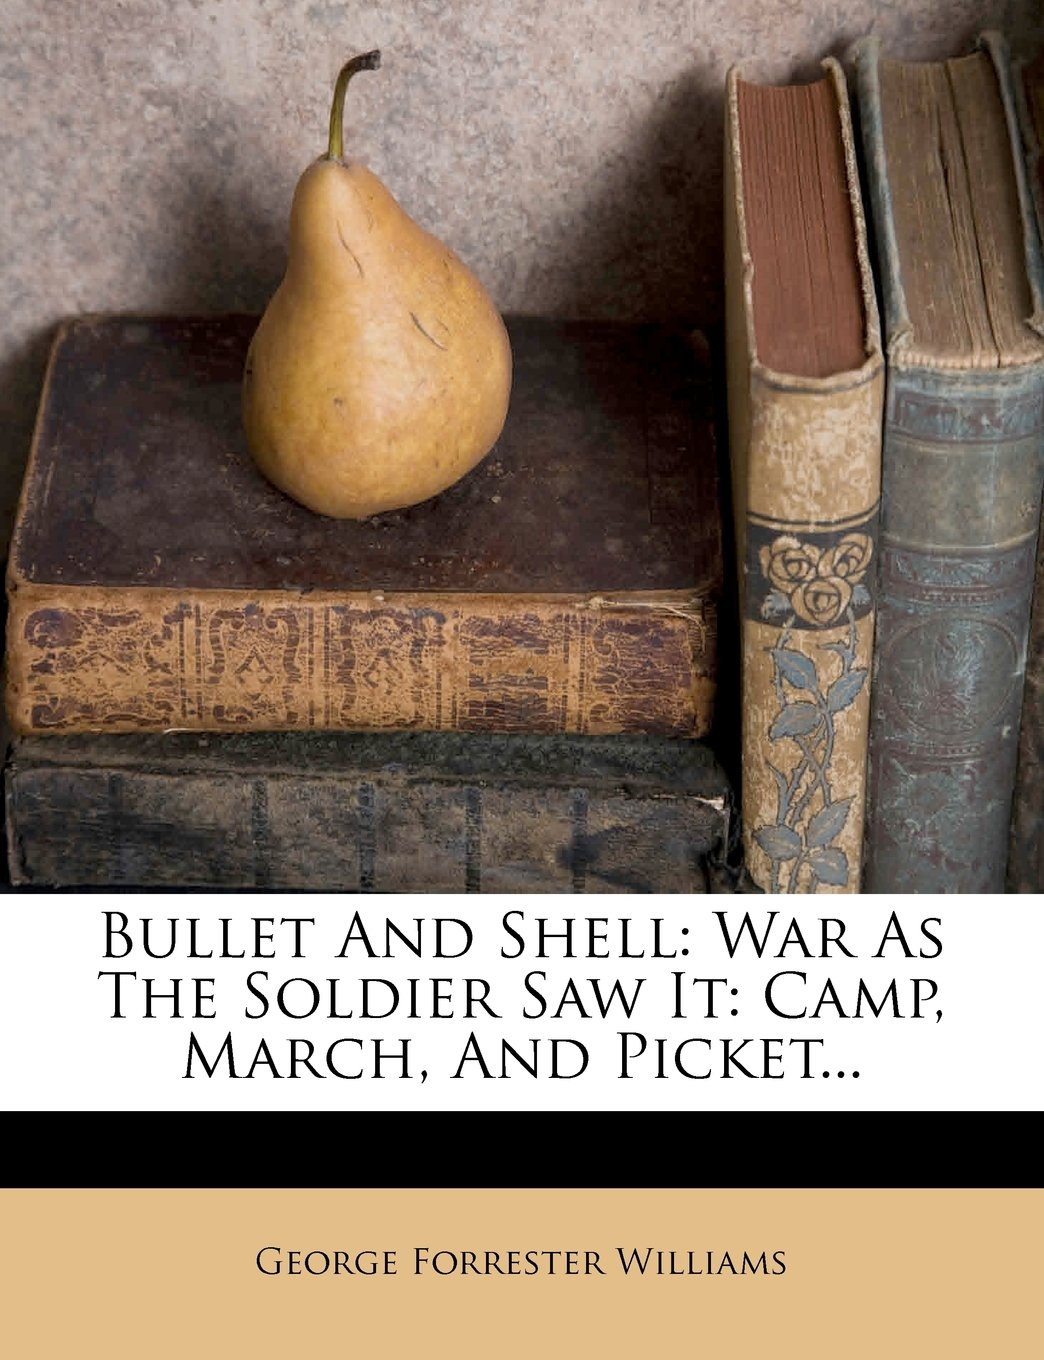 Bullet And Shell: War As The Soldier Saw It: Camp, March, And Picket... pdf epub